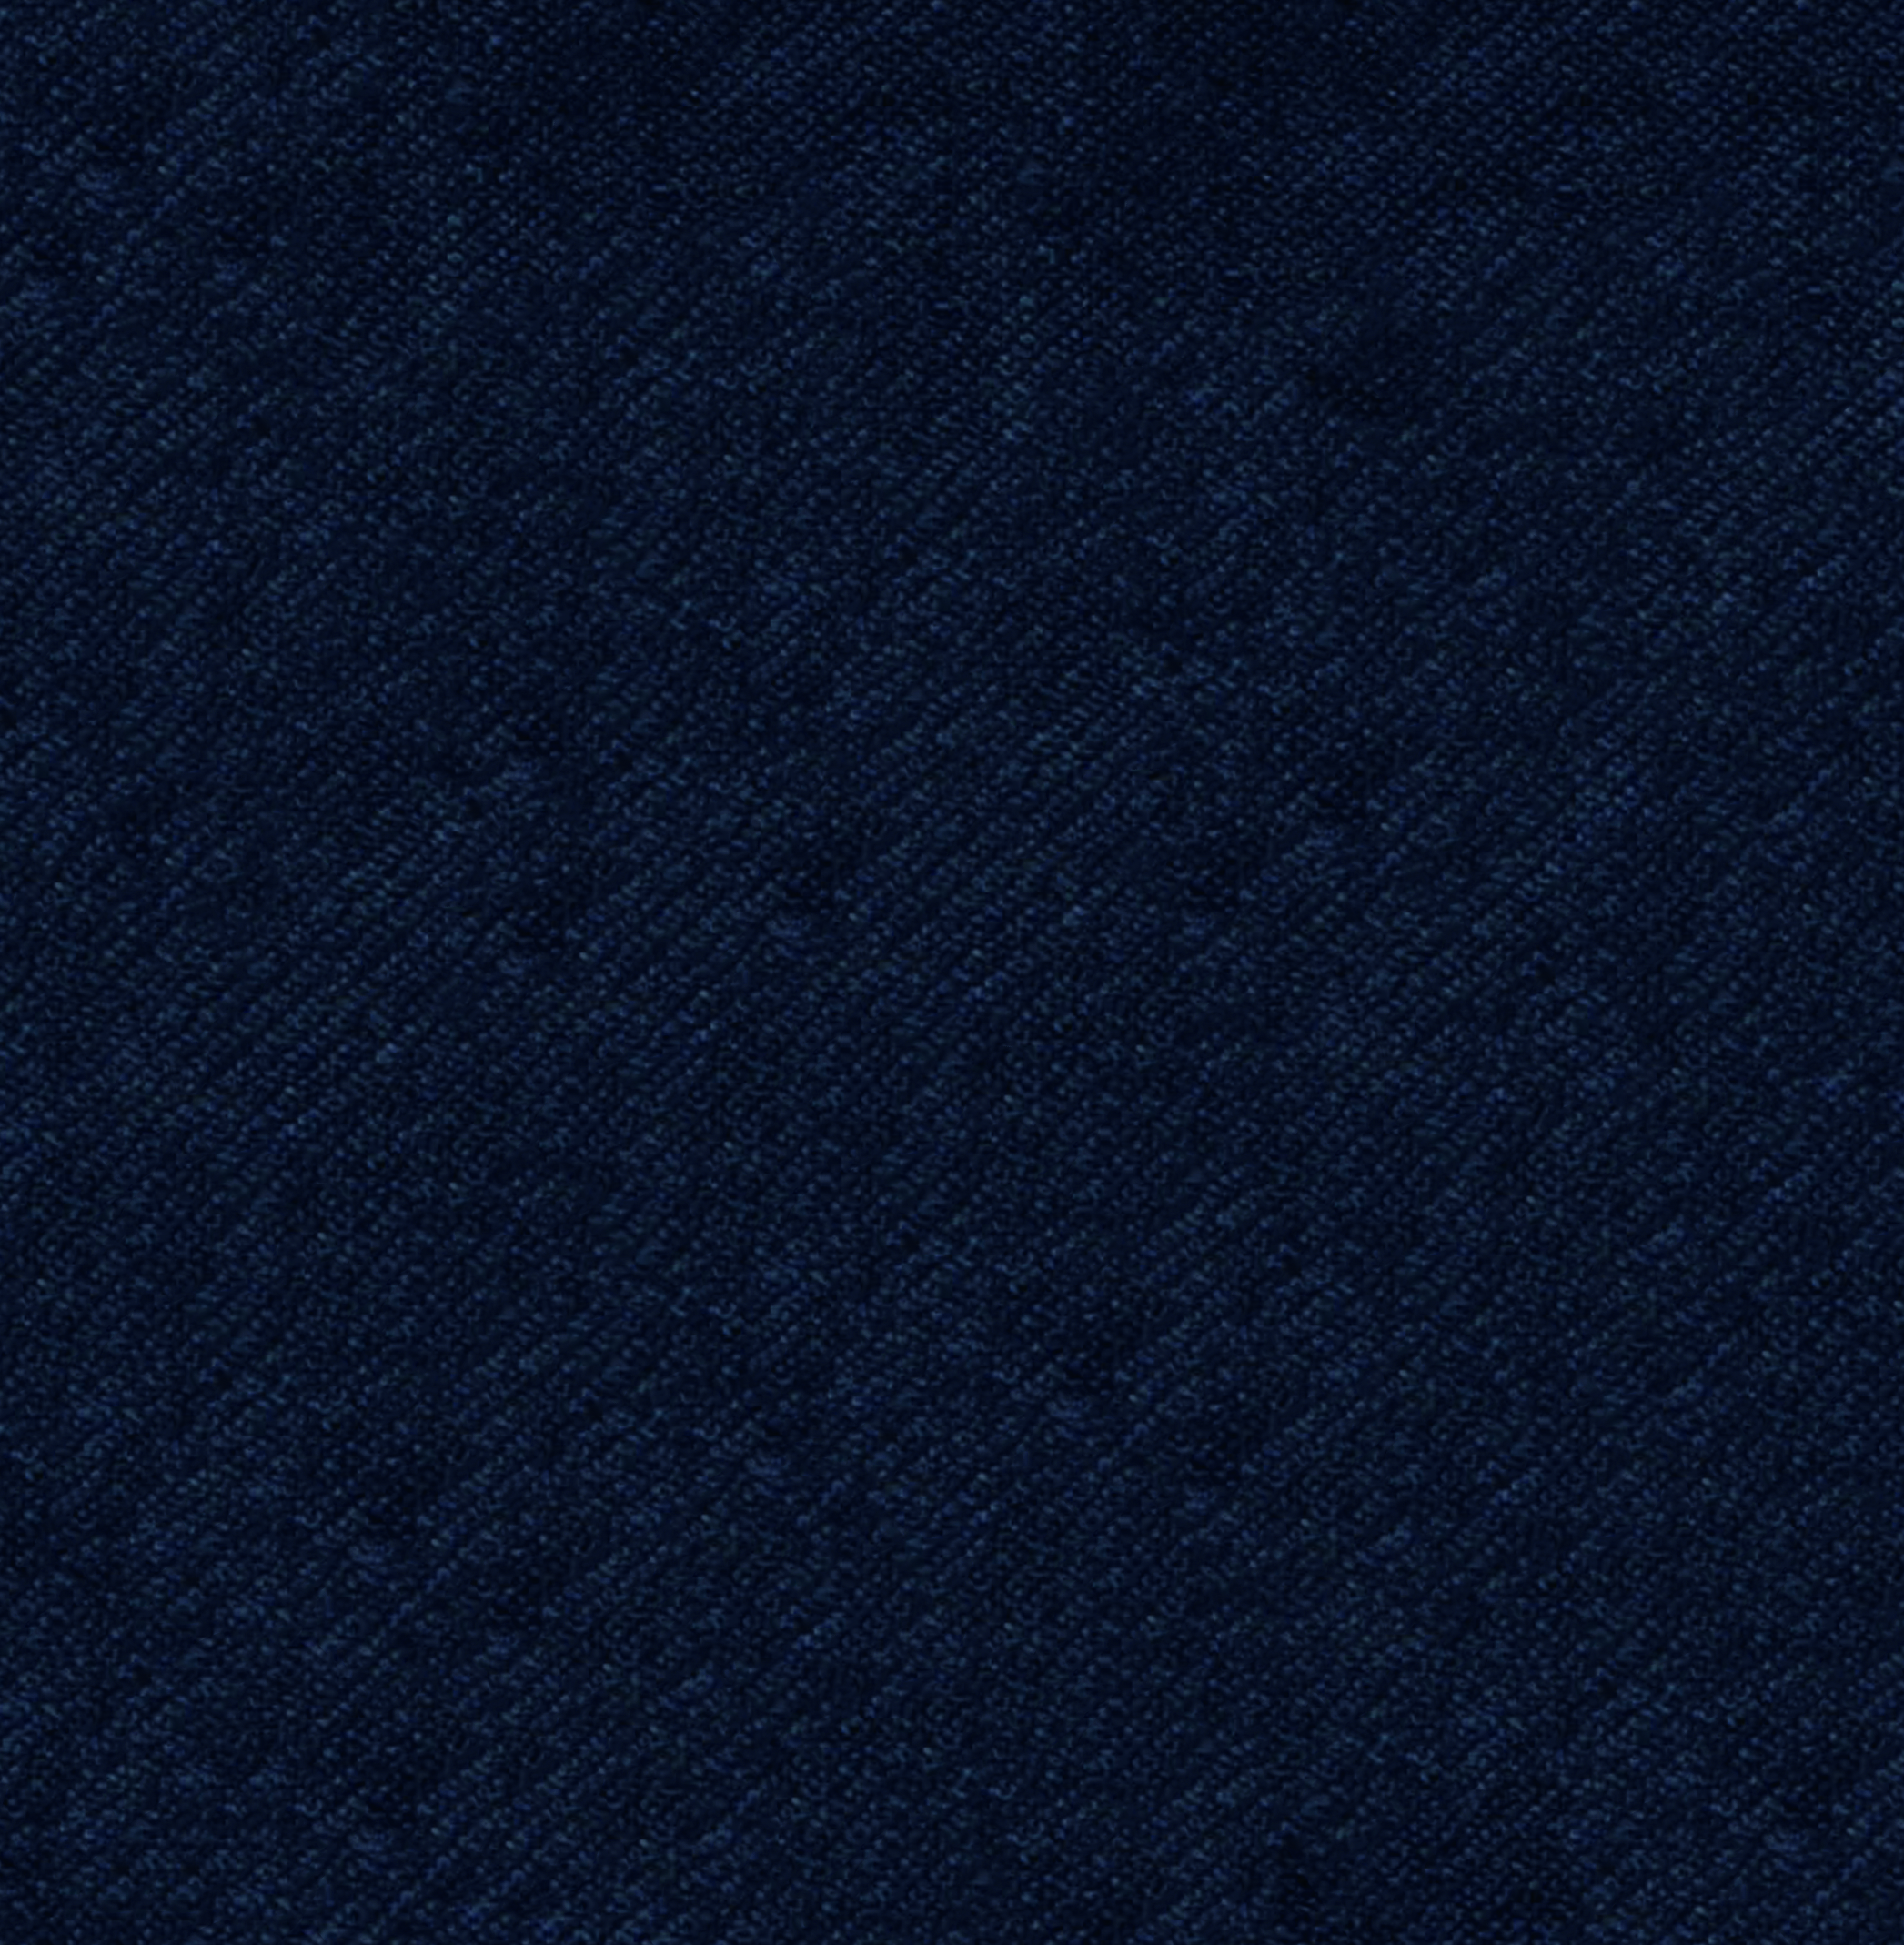 Buy tailor made shirts online - Luxurious Pure New Wool - French Navy No lining